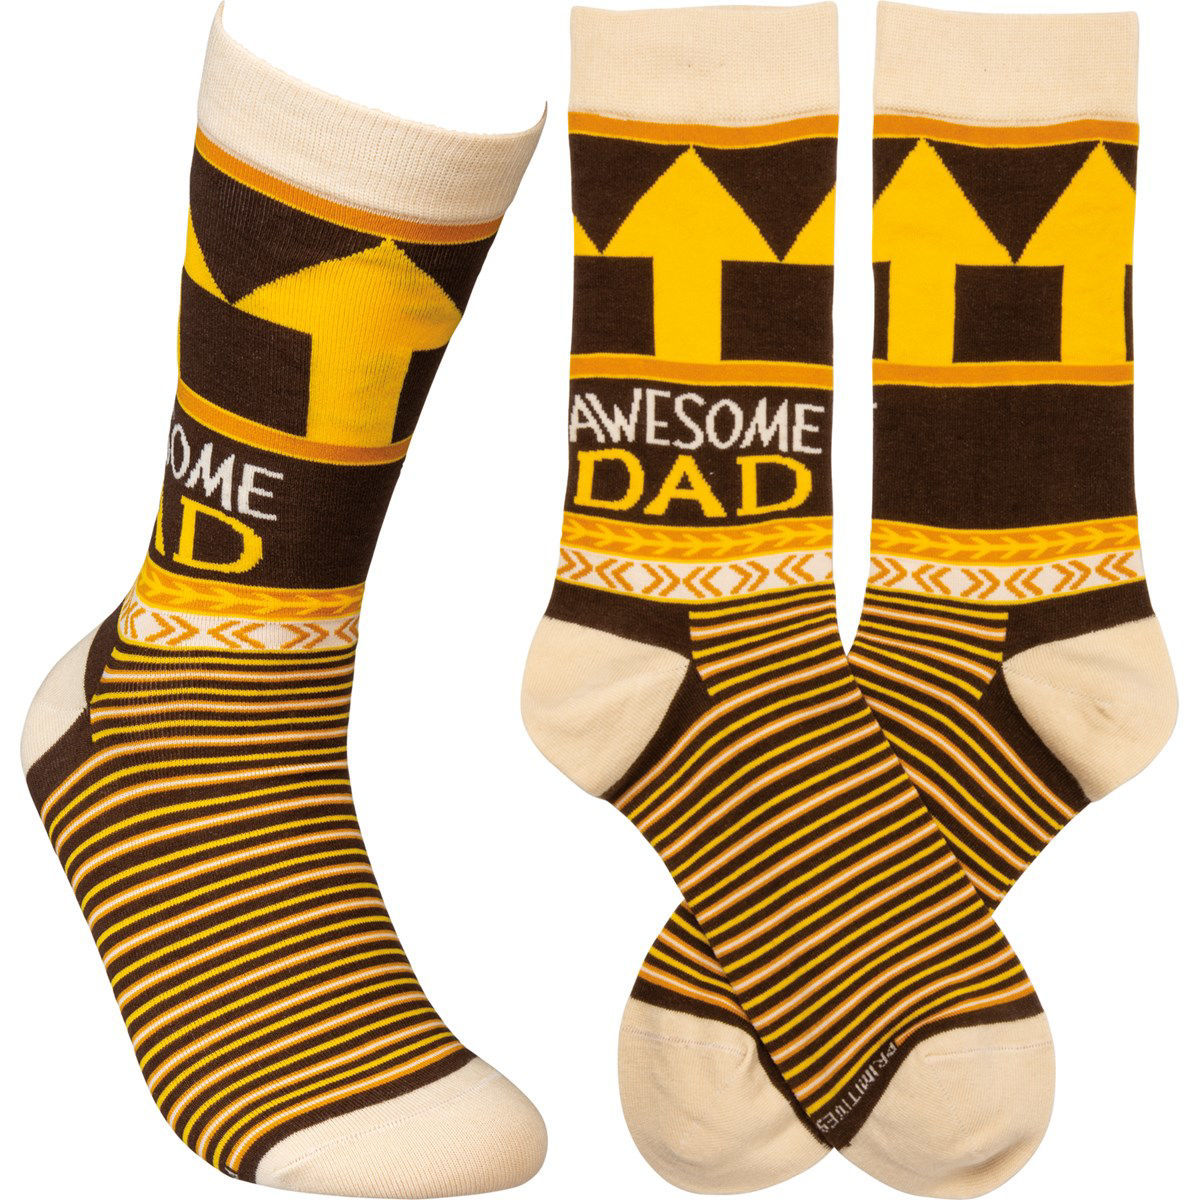 Awesome Dad Socks by Primitives by Kathy